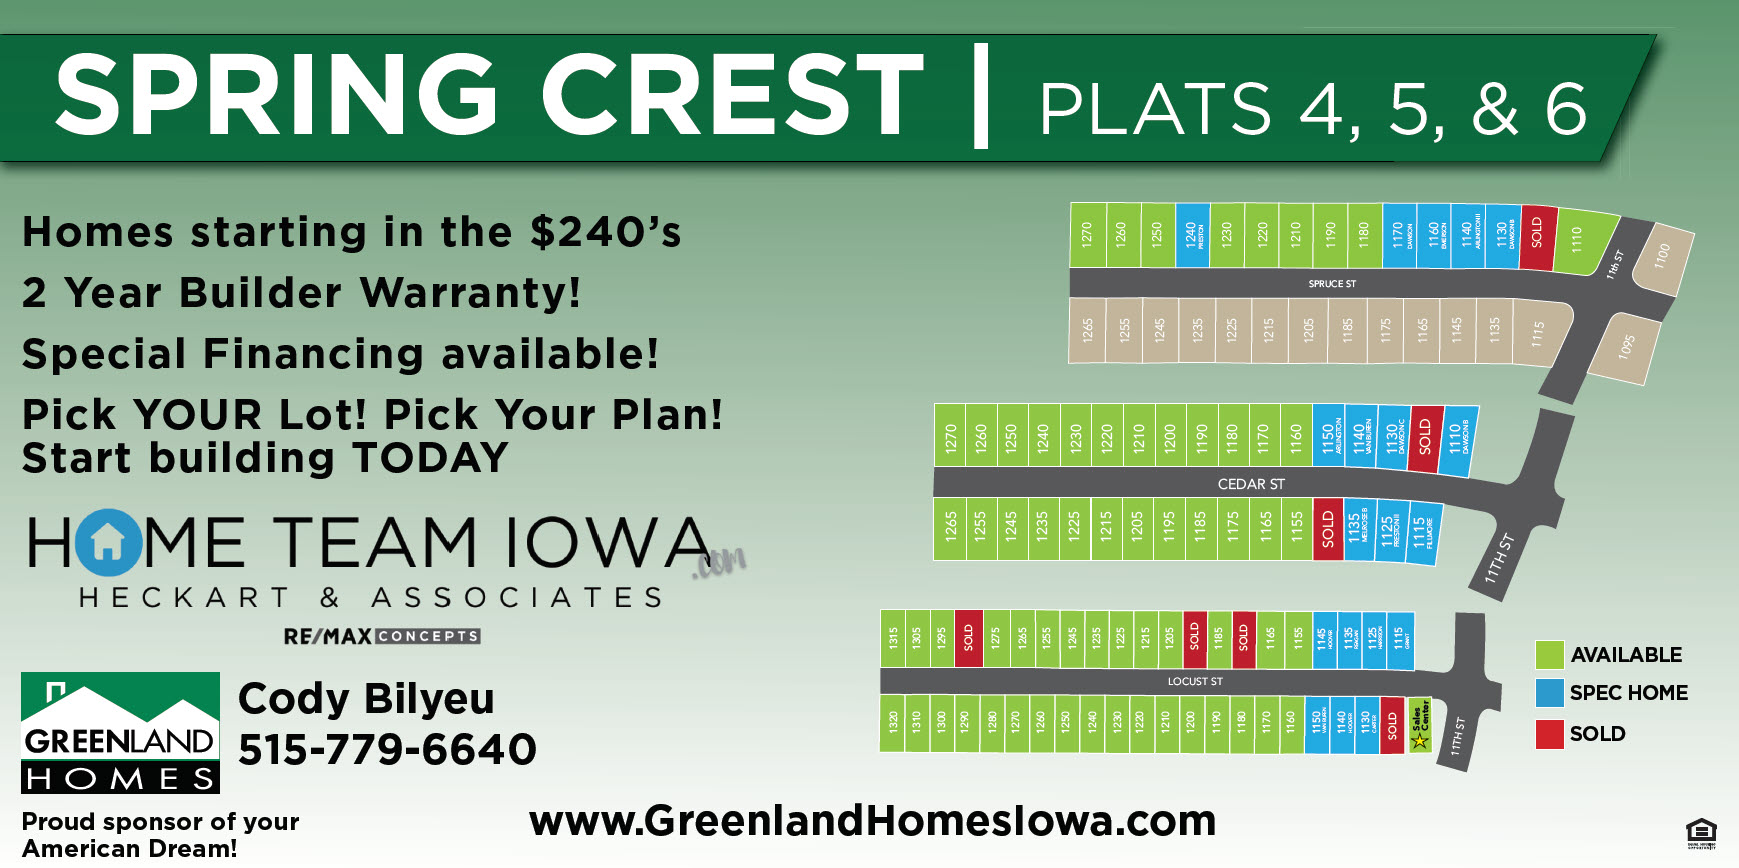 More Options at Spring Crest in Waukee